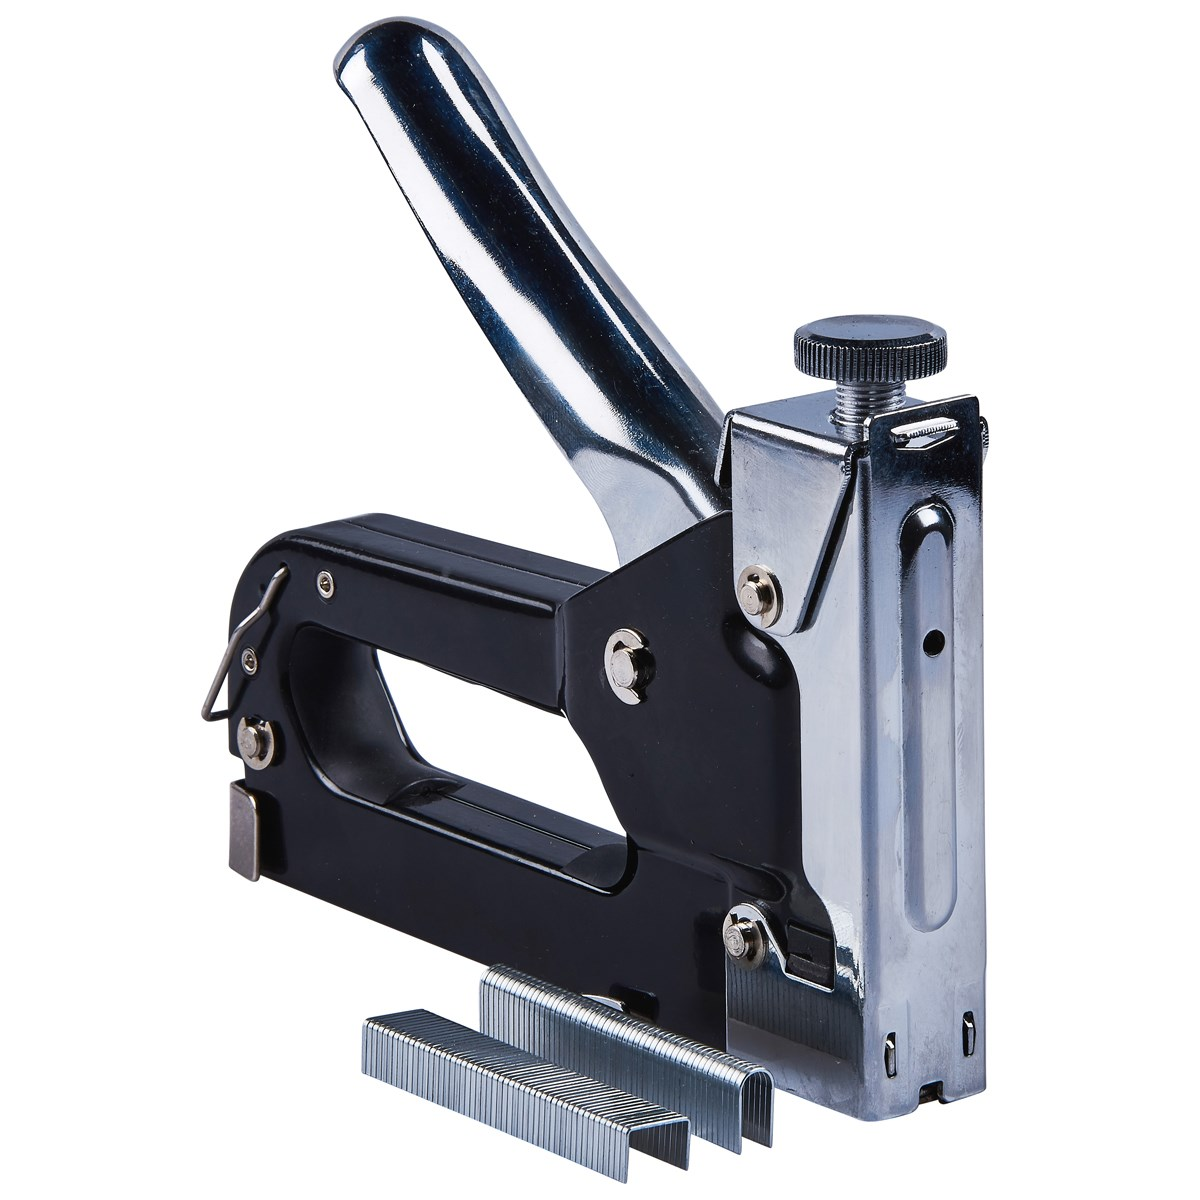 Image of 3 in 1 staple gun